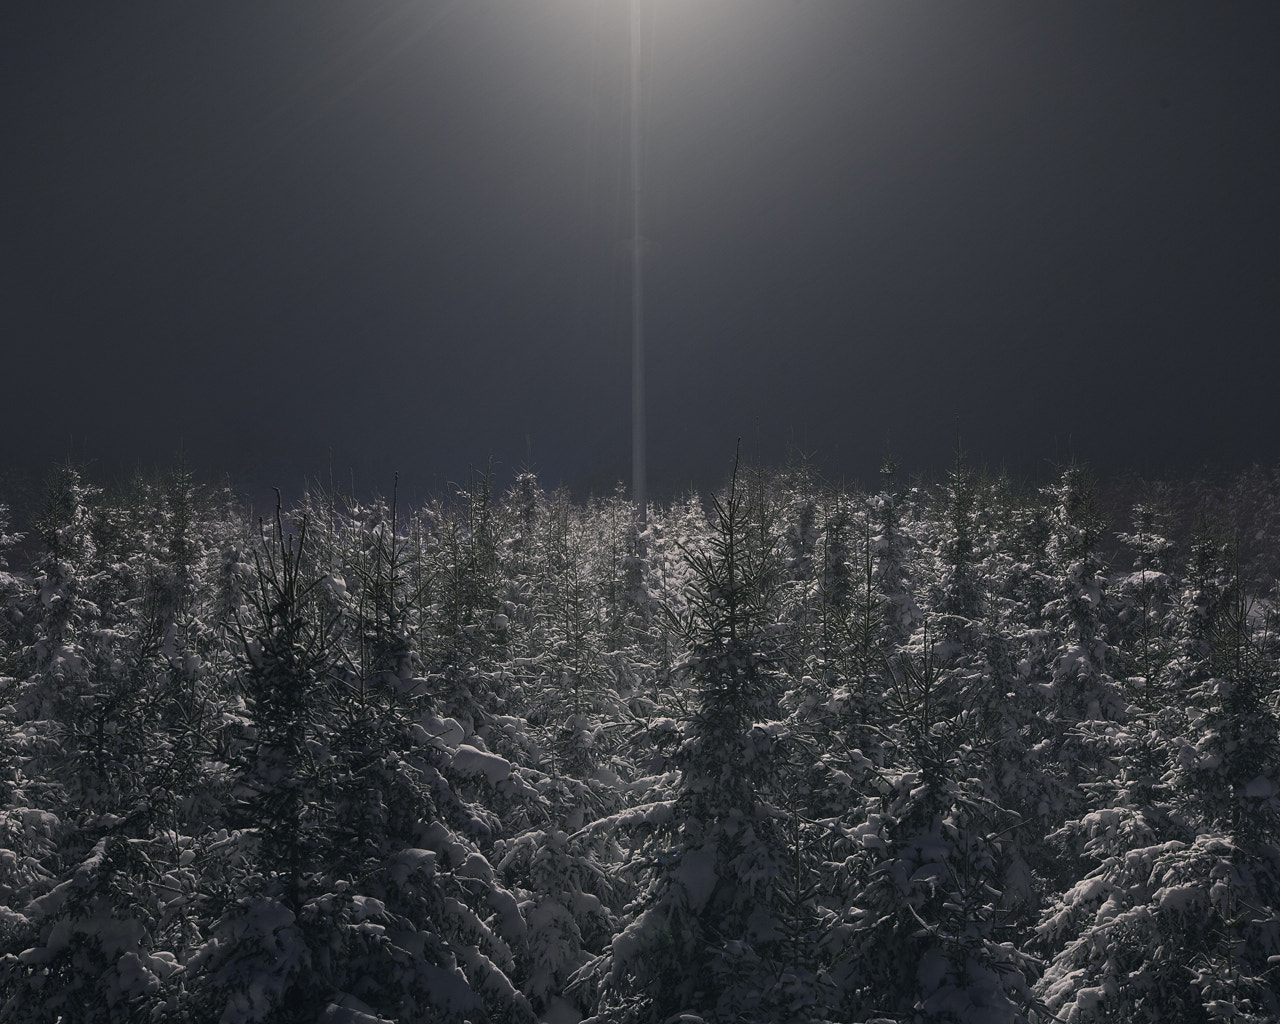 Photograph Untitled by Benoit  paille on 500px